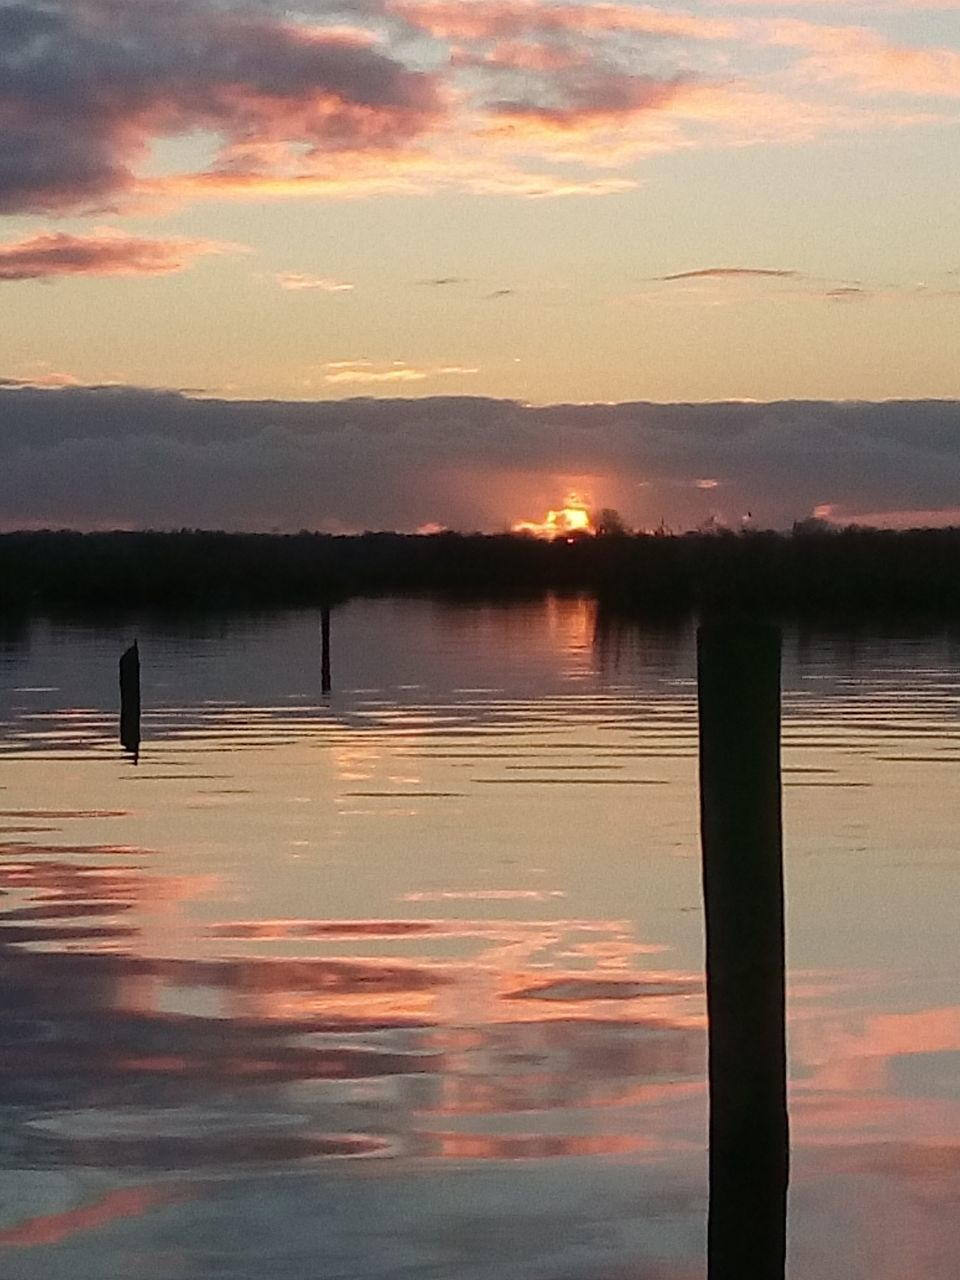 sunset, water, lake, nature, reflection, beauty in nature, scenics, silhouette, tranquility, tranquil scene, animals in the wild, bird, no people, sky, animal themes, waterfront, outdoors, wooden post, cloud - sky, animal wildlife, one animal, swimming, day